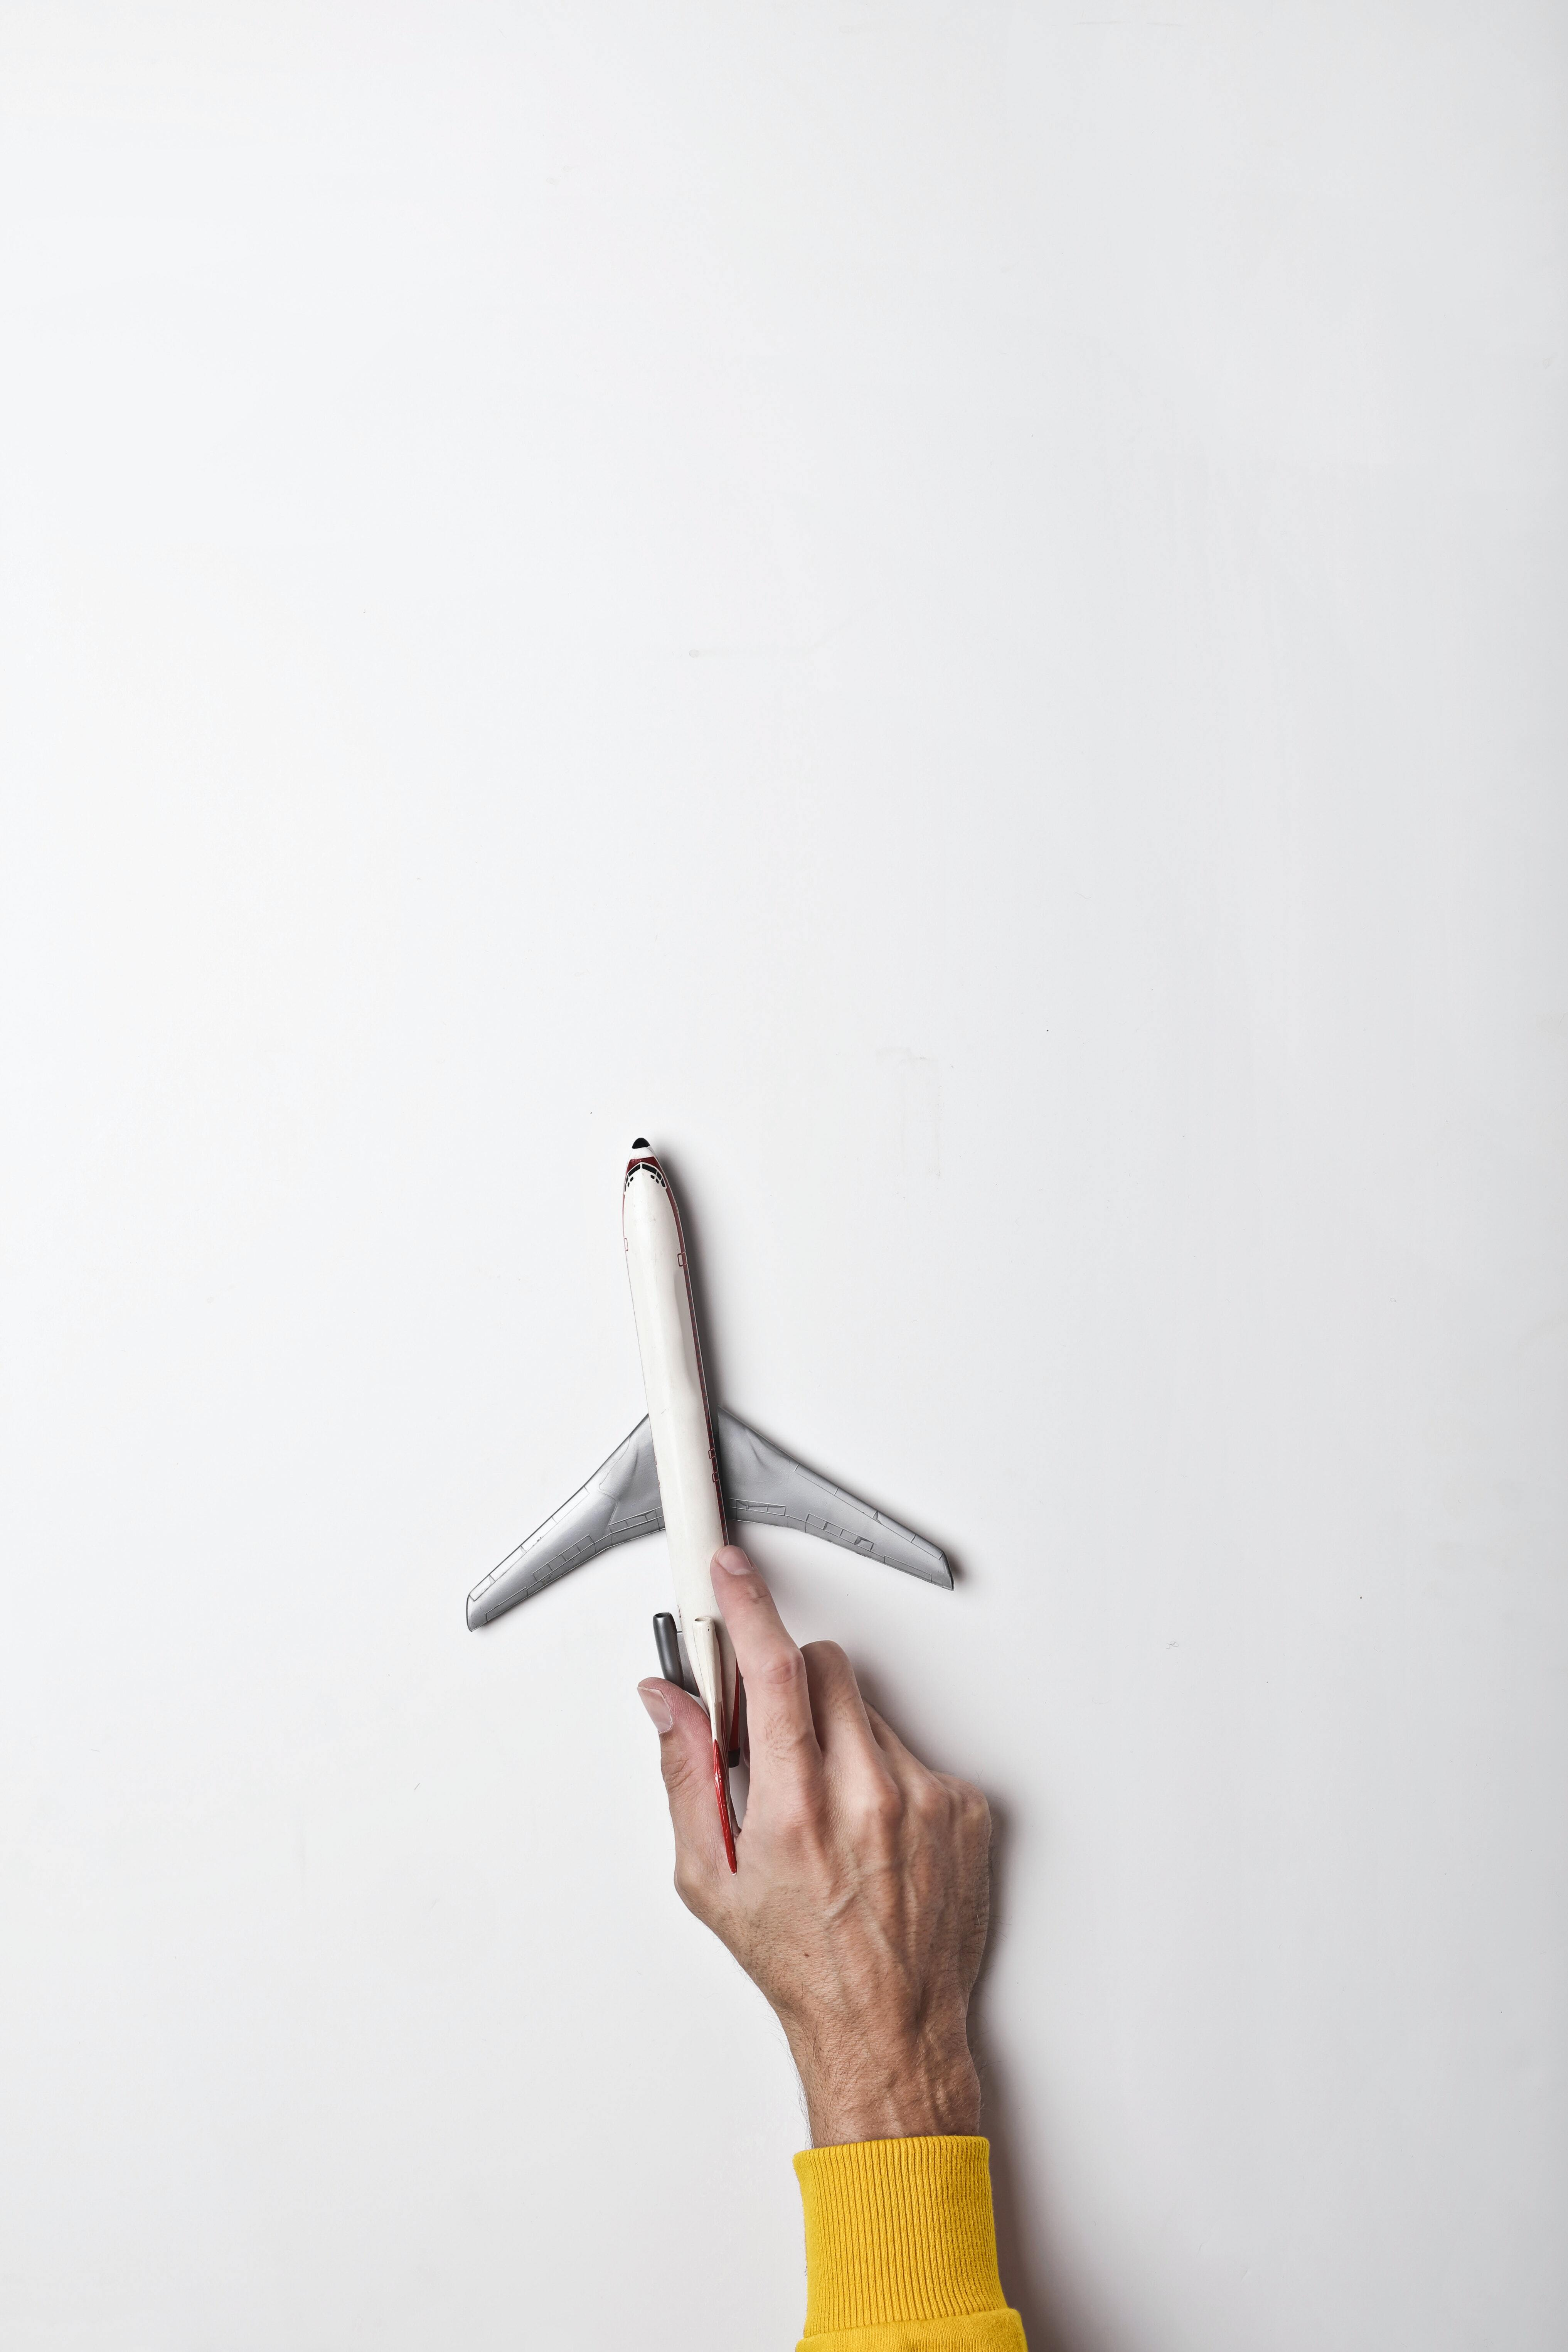 hand pushing a toy plane